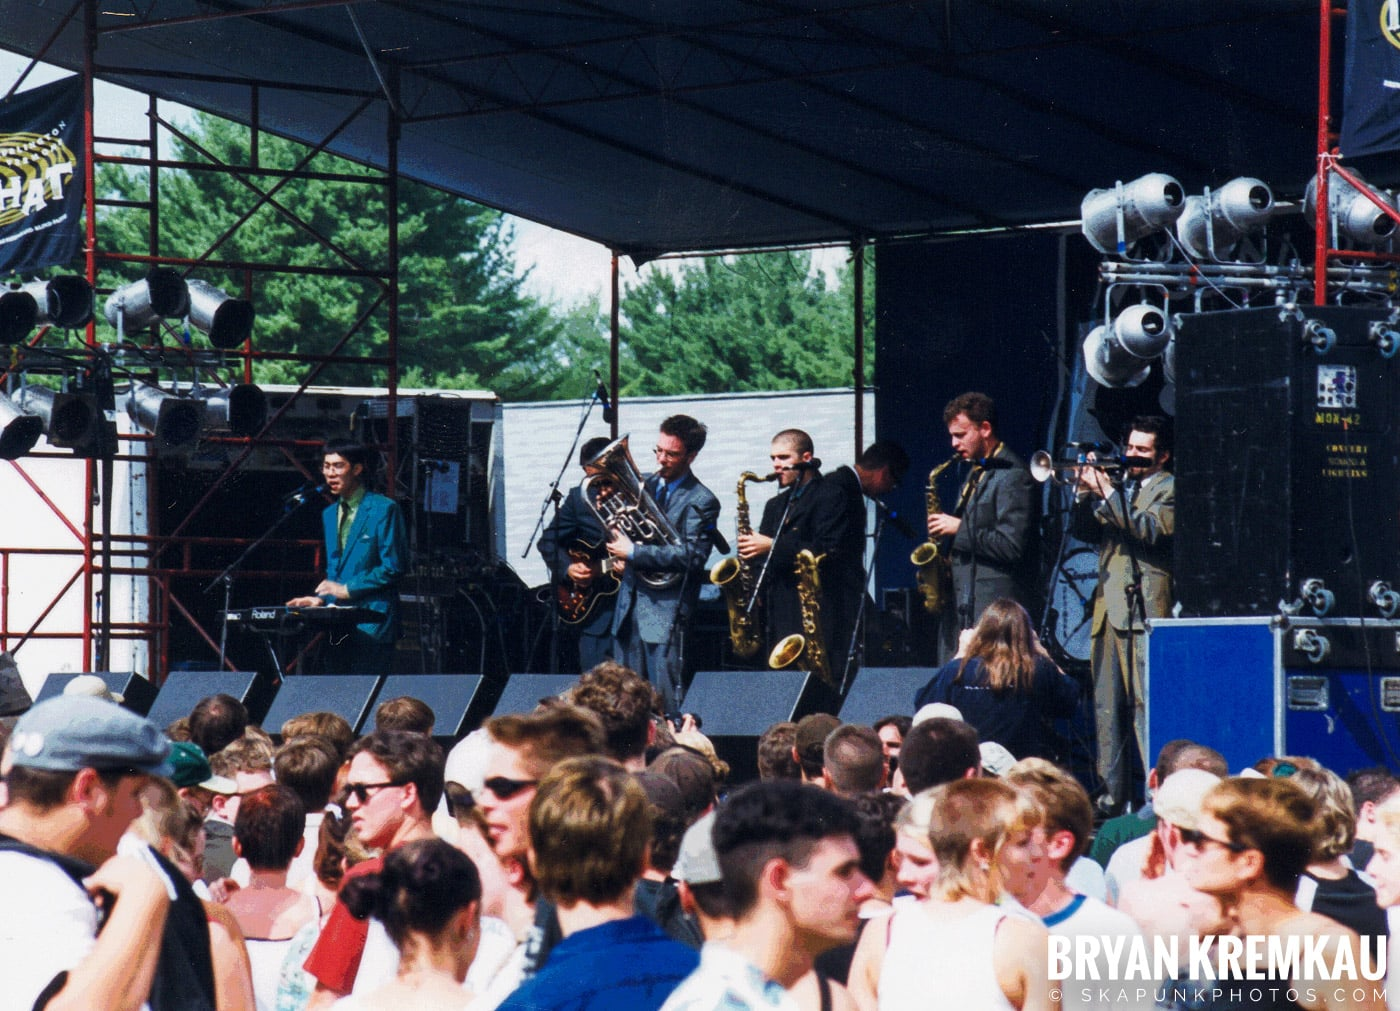 Skavoovie & The Epitones @ New England Ska Fest 98, Westford, MA - 8.22.98 (2)